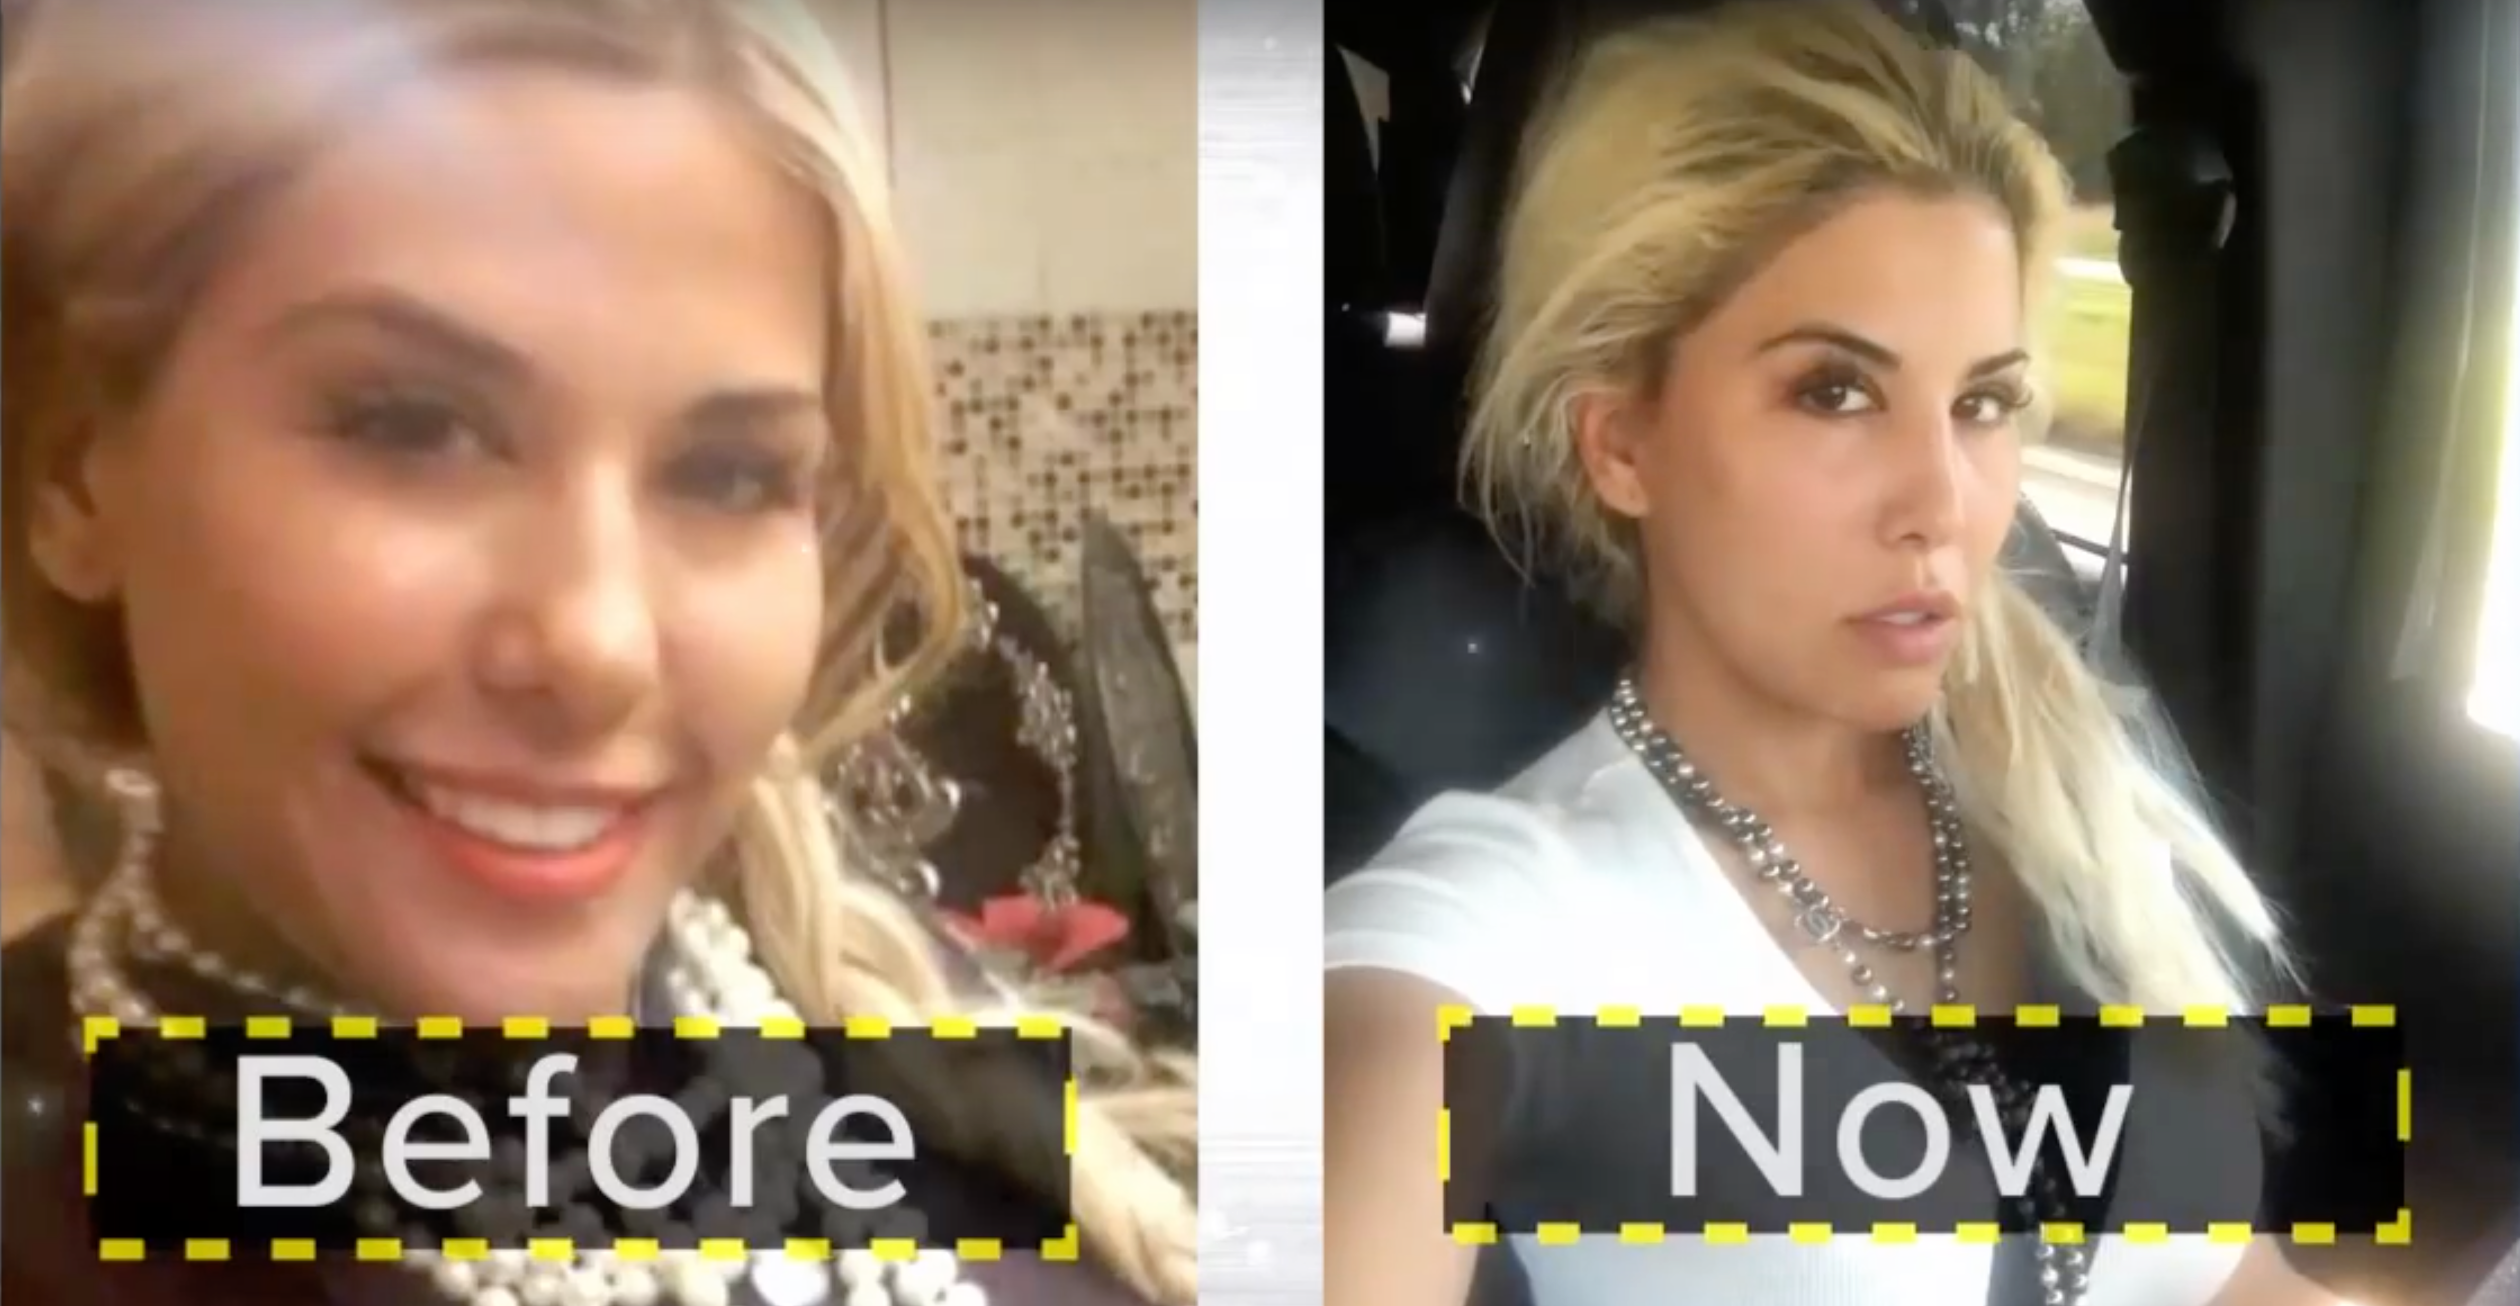 The Ivanka Trump Makeover Is Now a Plastic Surgery Trend recommendations